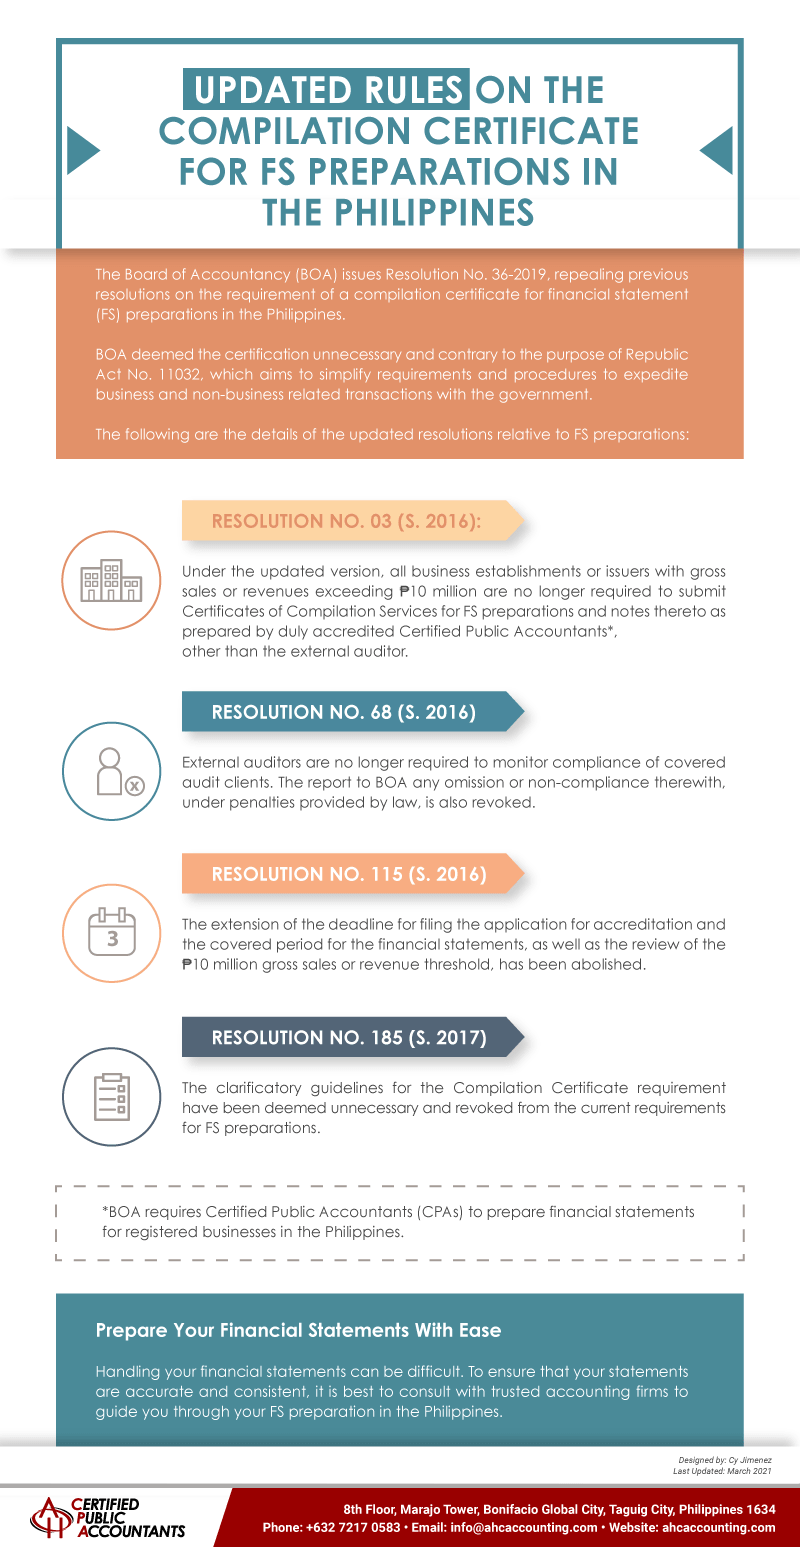 Rules on the Compilation Certificate for FS Preparations in the Philippines